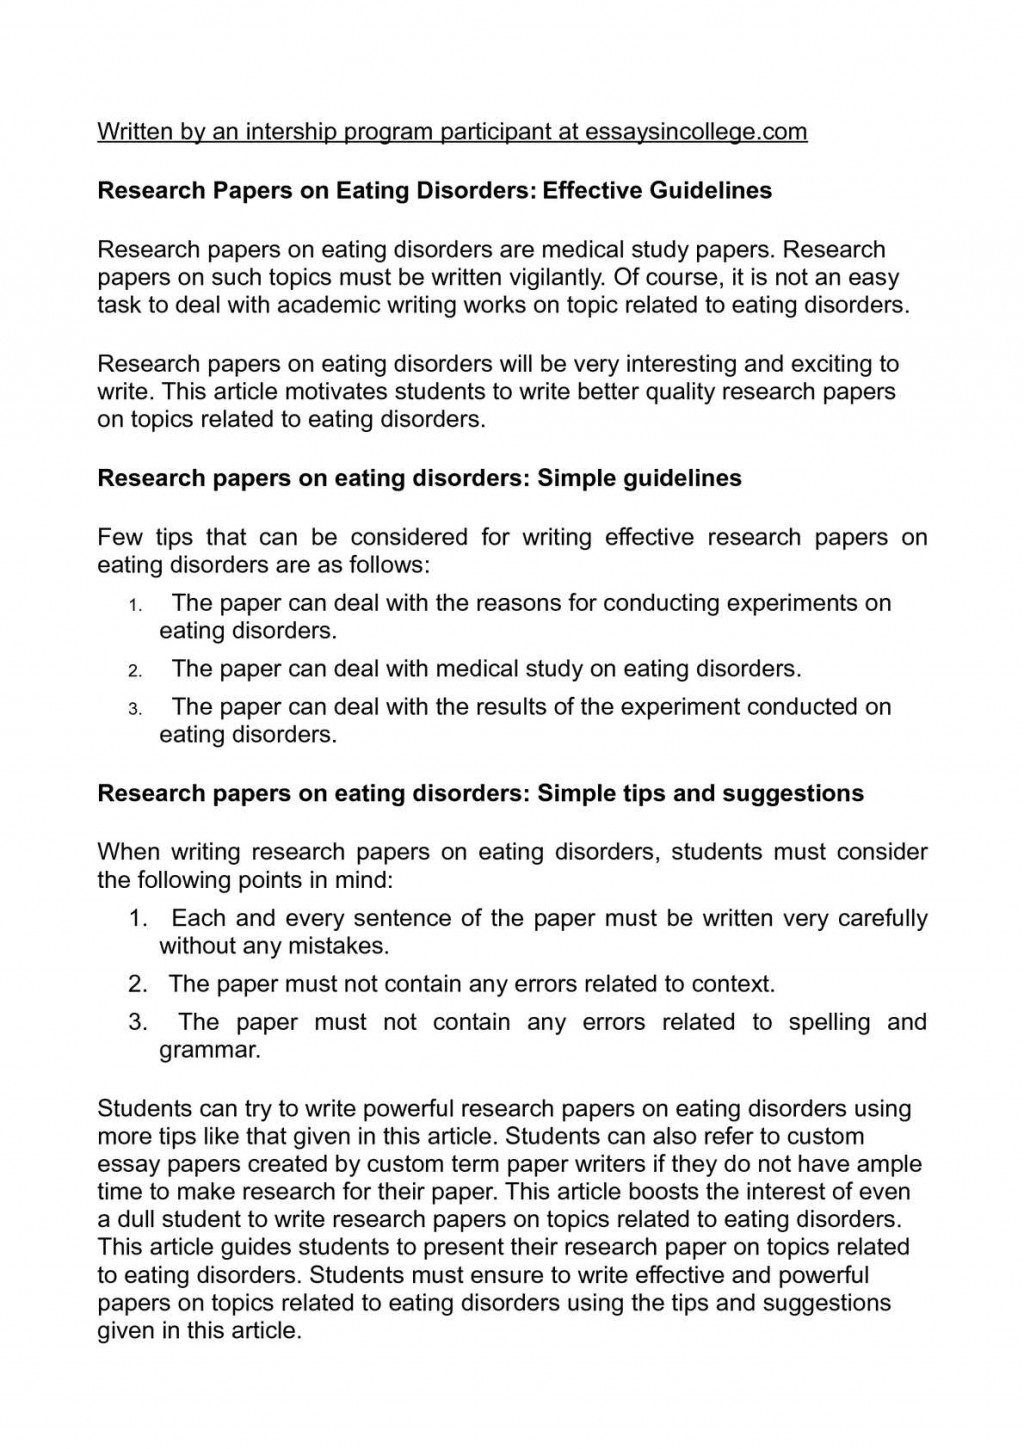 006 Examples Of Research Papers On Eating Disorders Paper Frightening Large